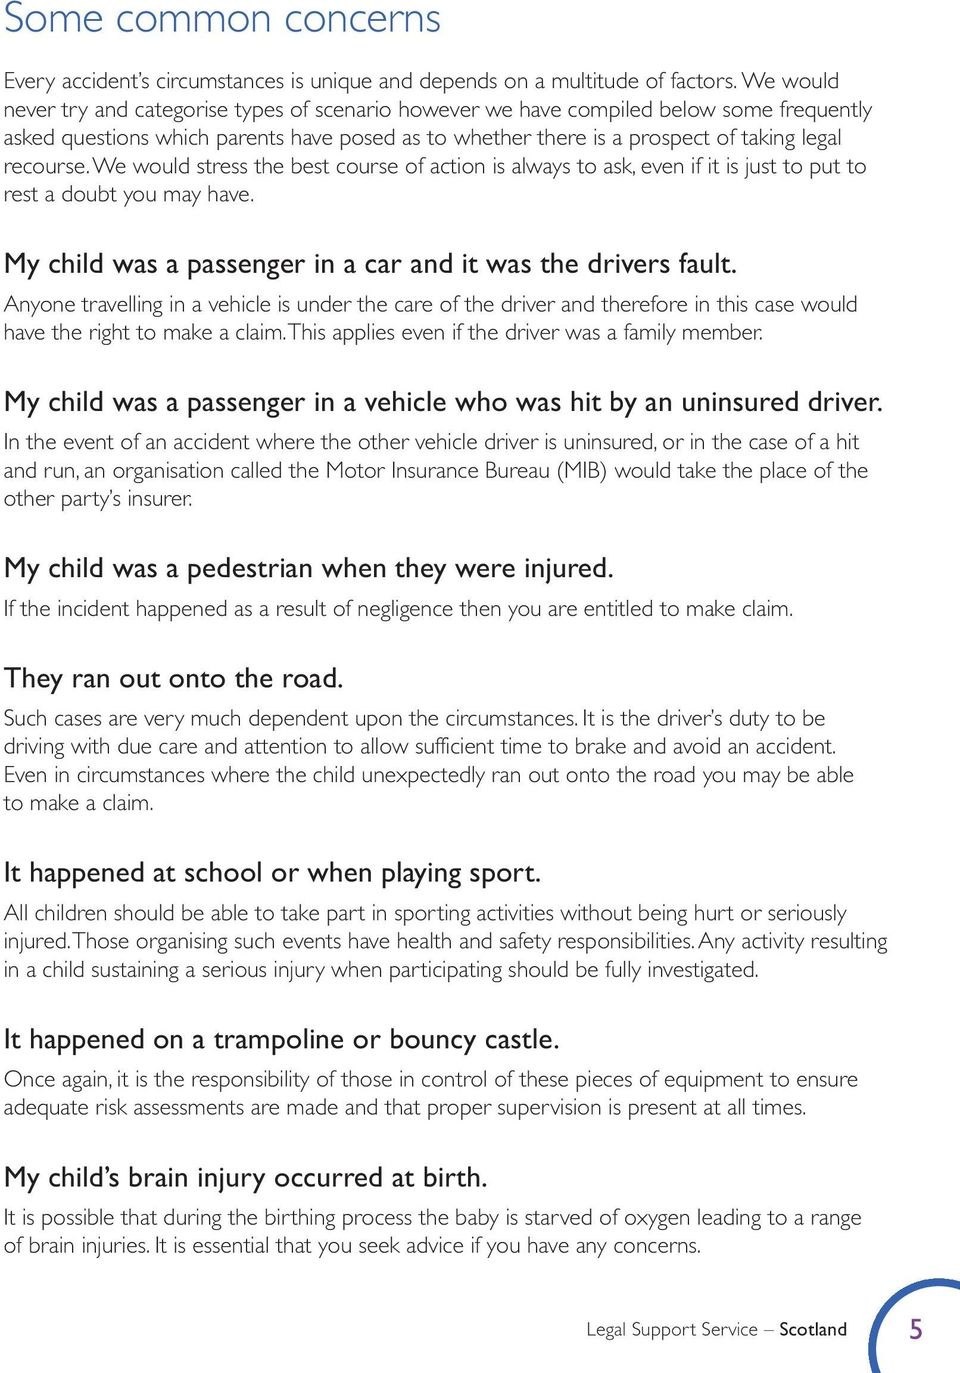 We would stress the best course of action is always to ask, even if it is just to put to rest a doubt you may have. My child was a passenger in a car and it was the drivers fault.